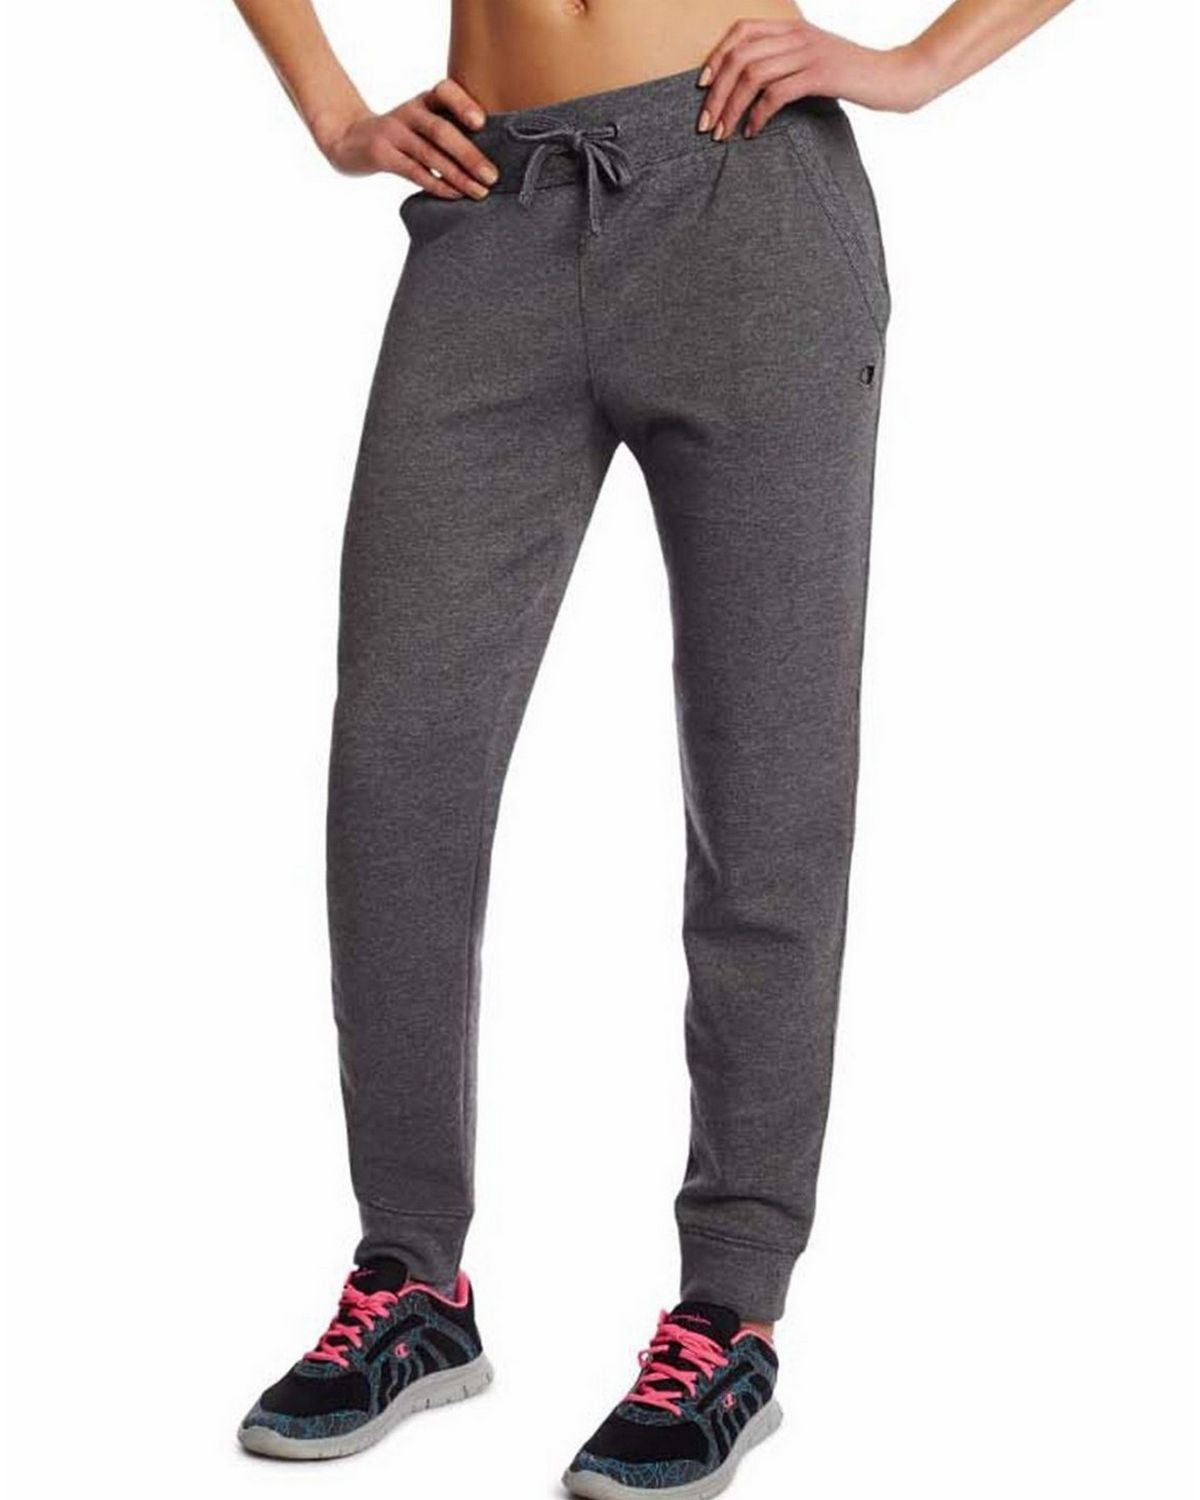 Champion M0937 Womens Fleece Jogger Pants - Granite Heather - XL M0937